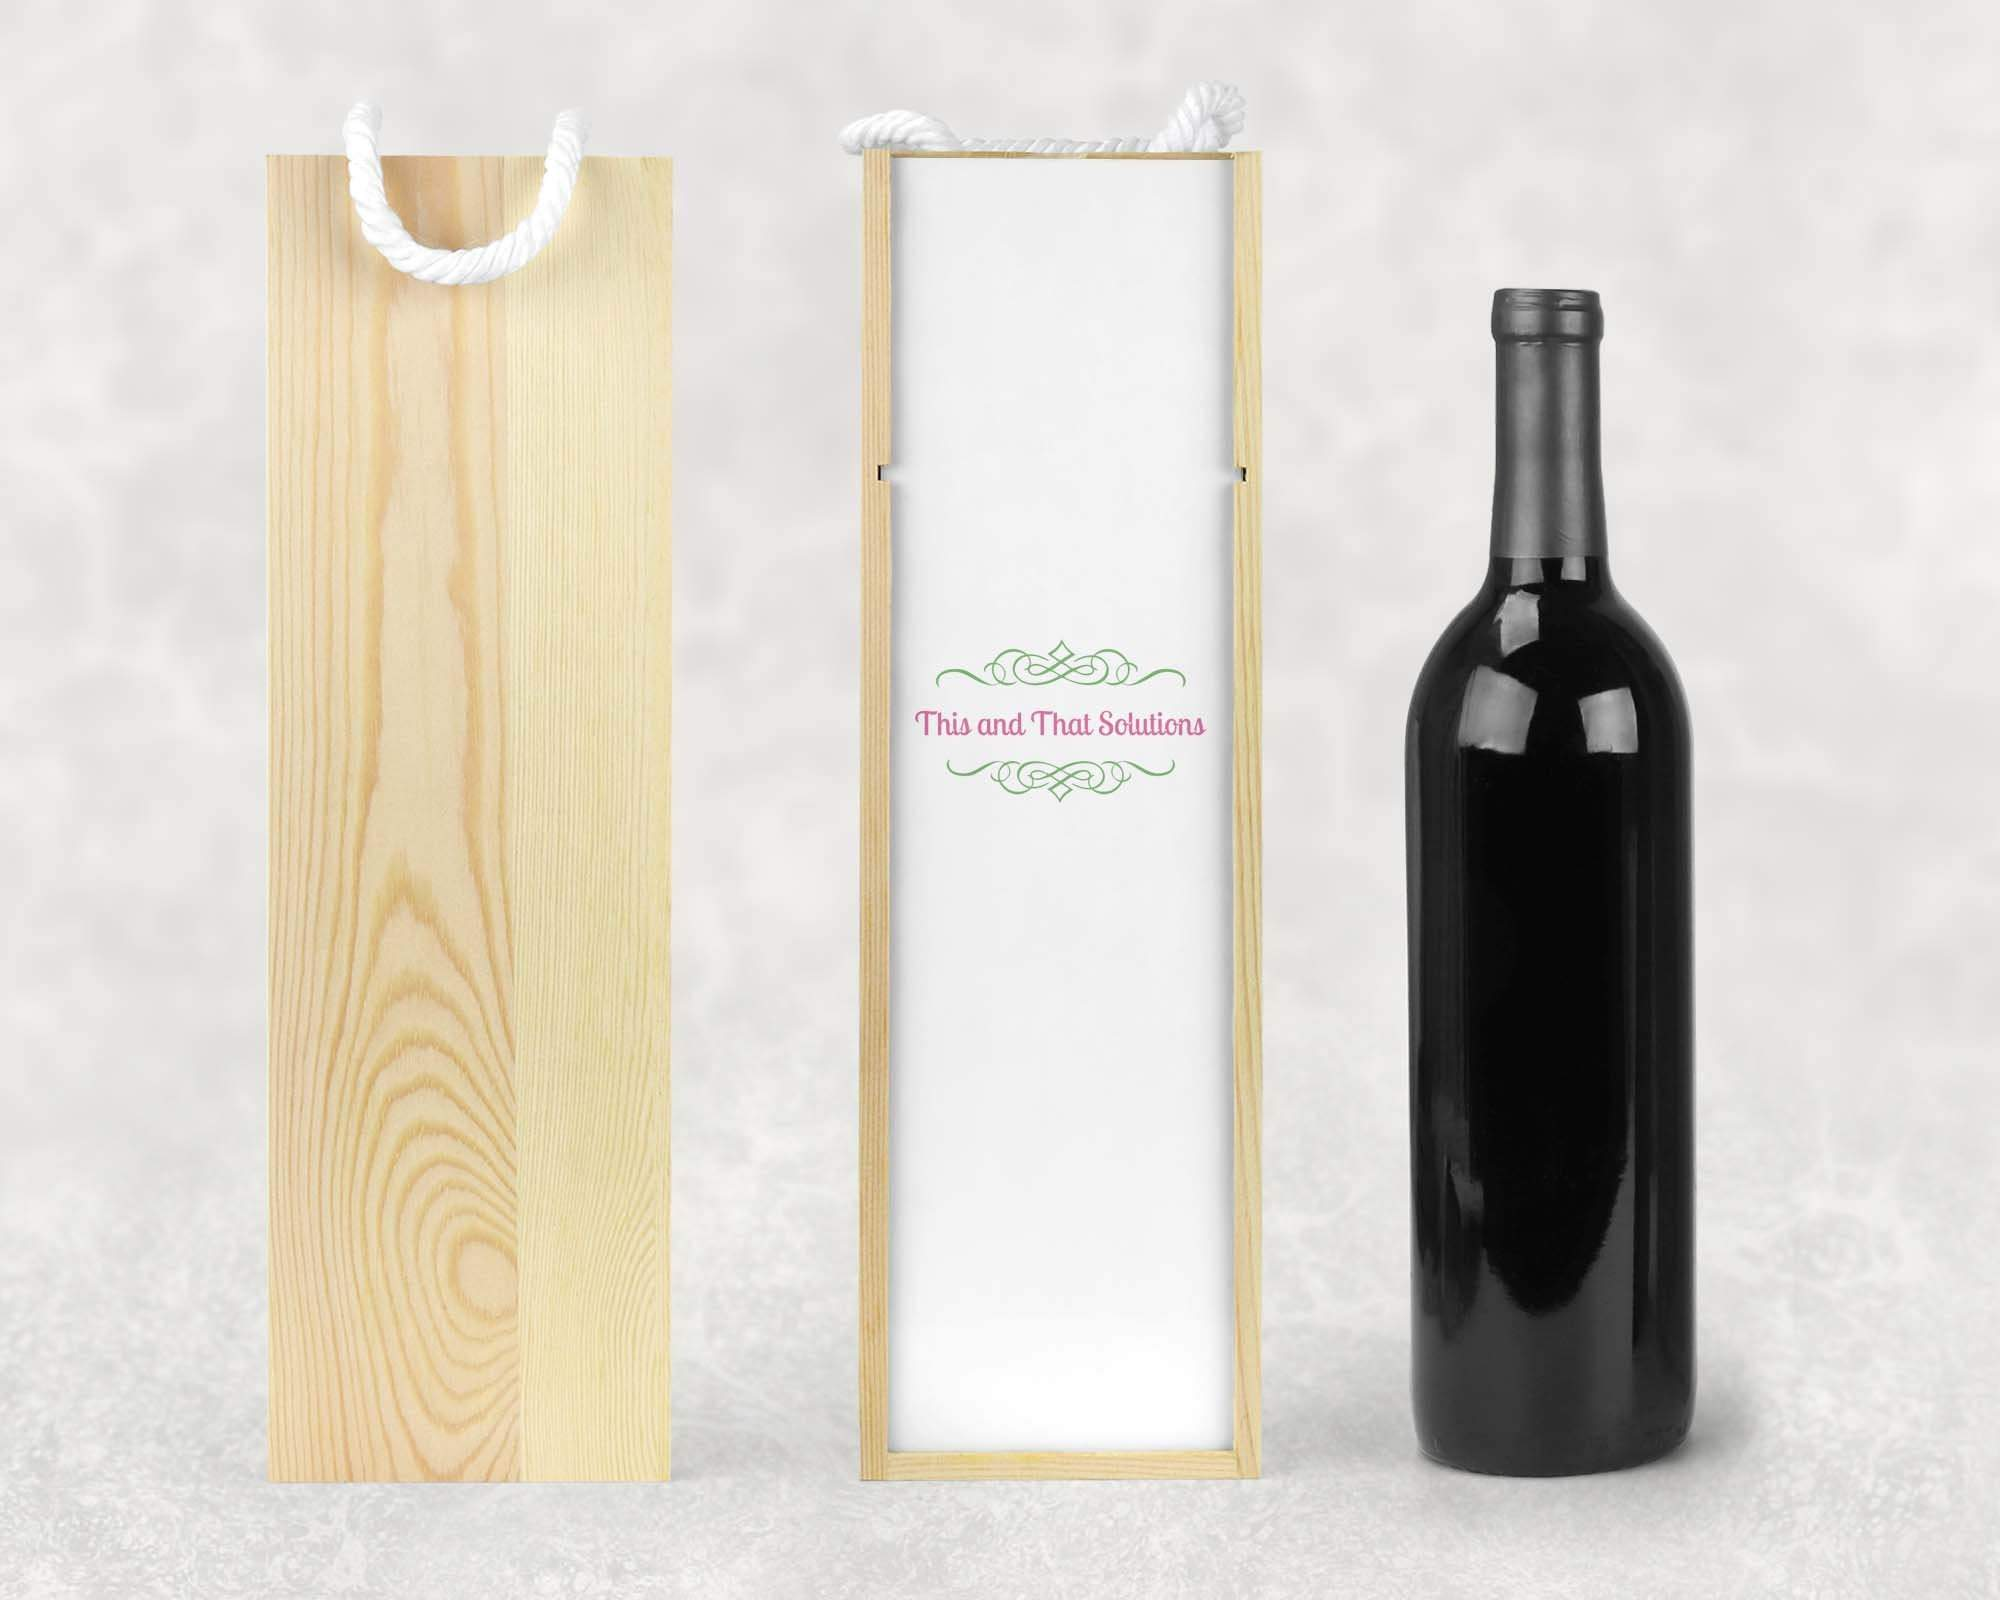 Wine & Beer Storage | Personalized Wine Box | Custom Wine Gifts | Wine Storage | Company Logo | This and That Solutions | Personalized Gifts | Custom Home Décor